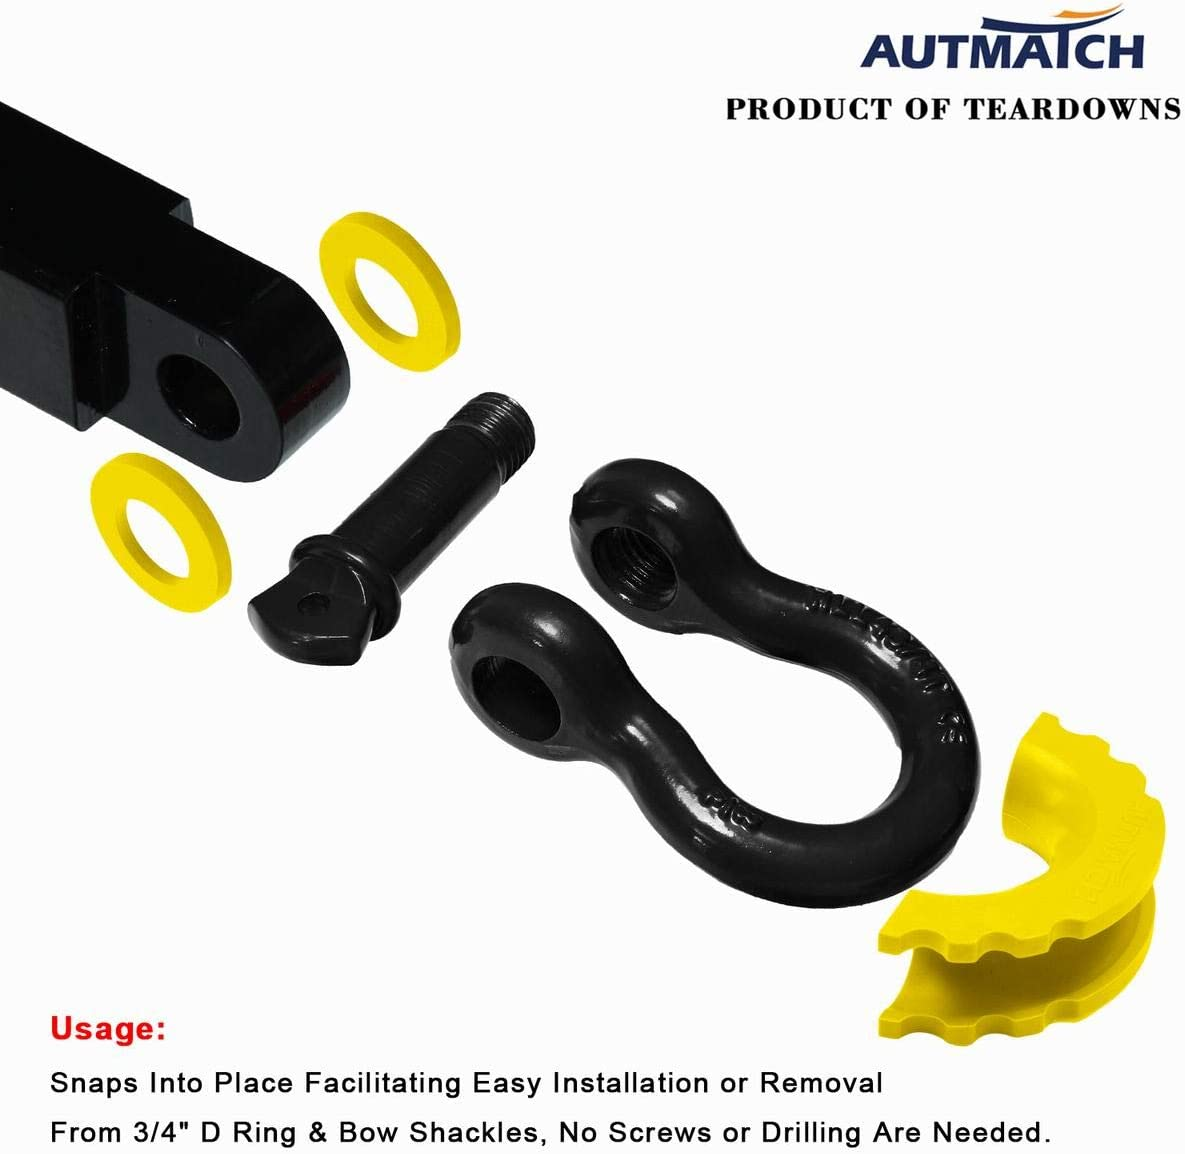 AUTMATCH Pack of 2 D-Ring Shackle Isolators Washers Kit 2 Rubber Shackle Isolators and 4 Washers Fits 3//4 Inch Shackle Gear Design Rattling Protection Shackle Cover Yellow